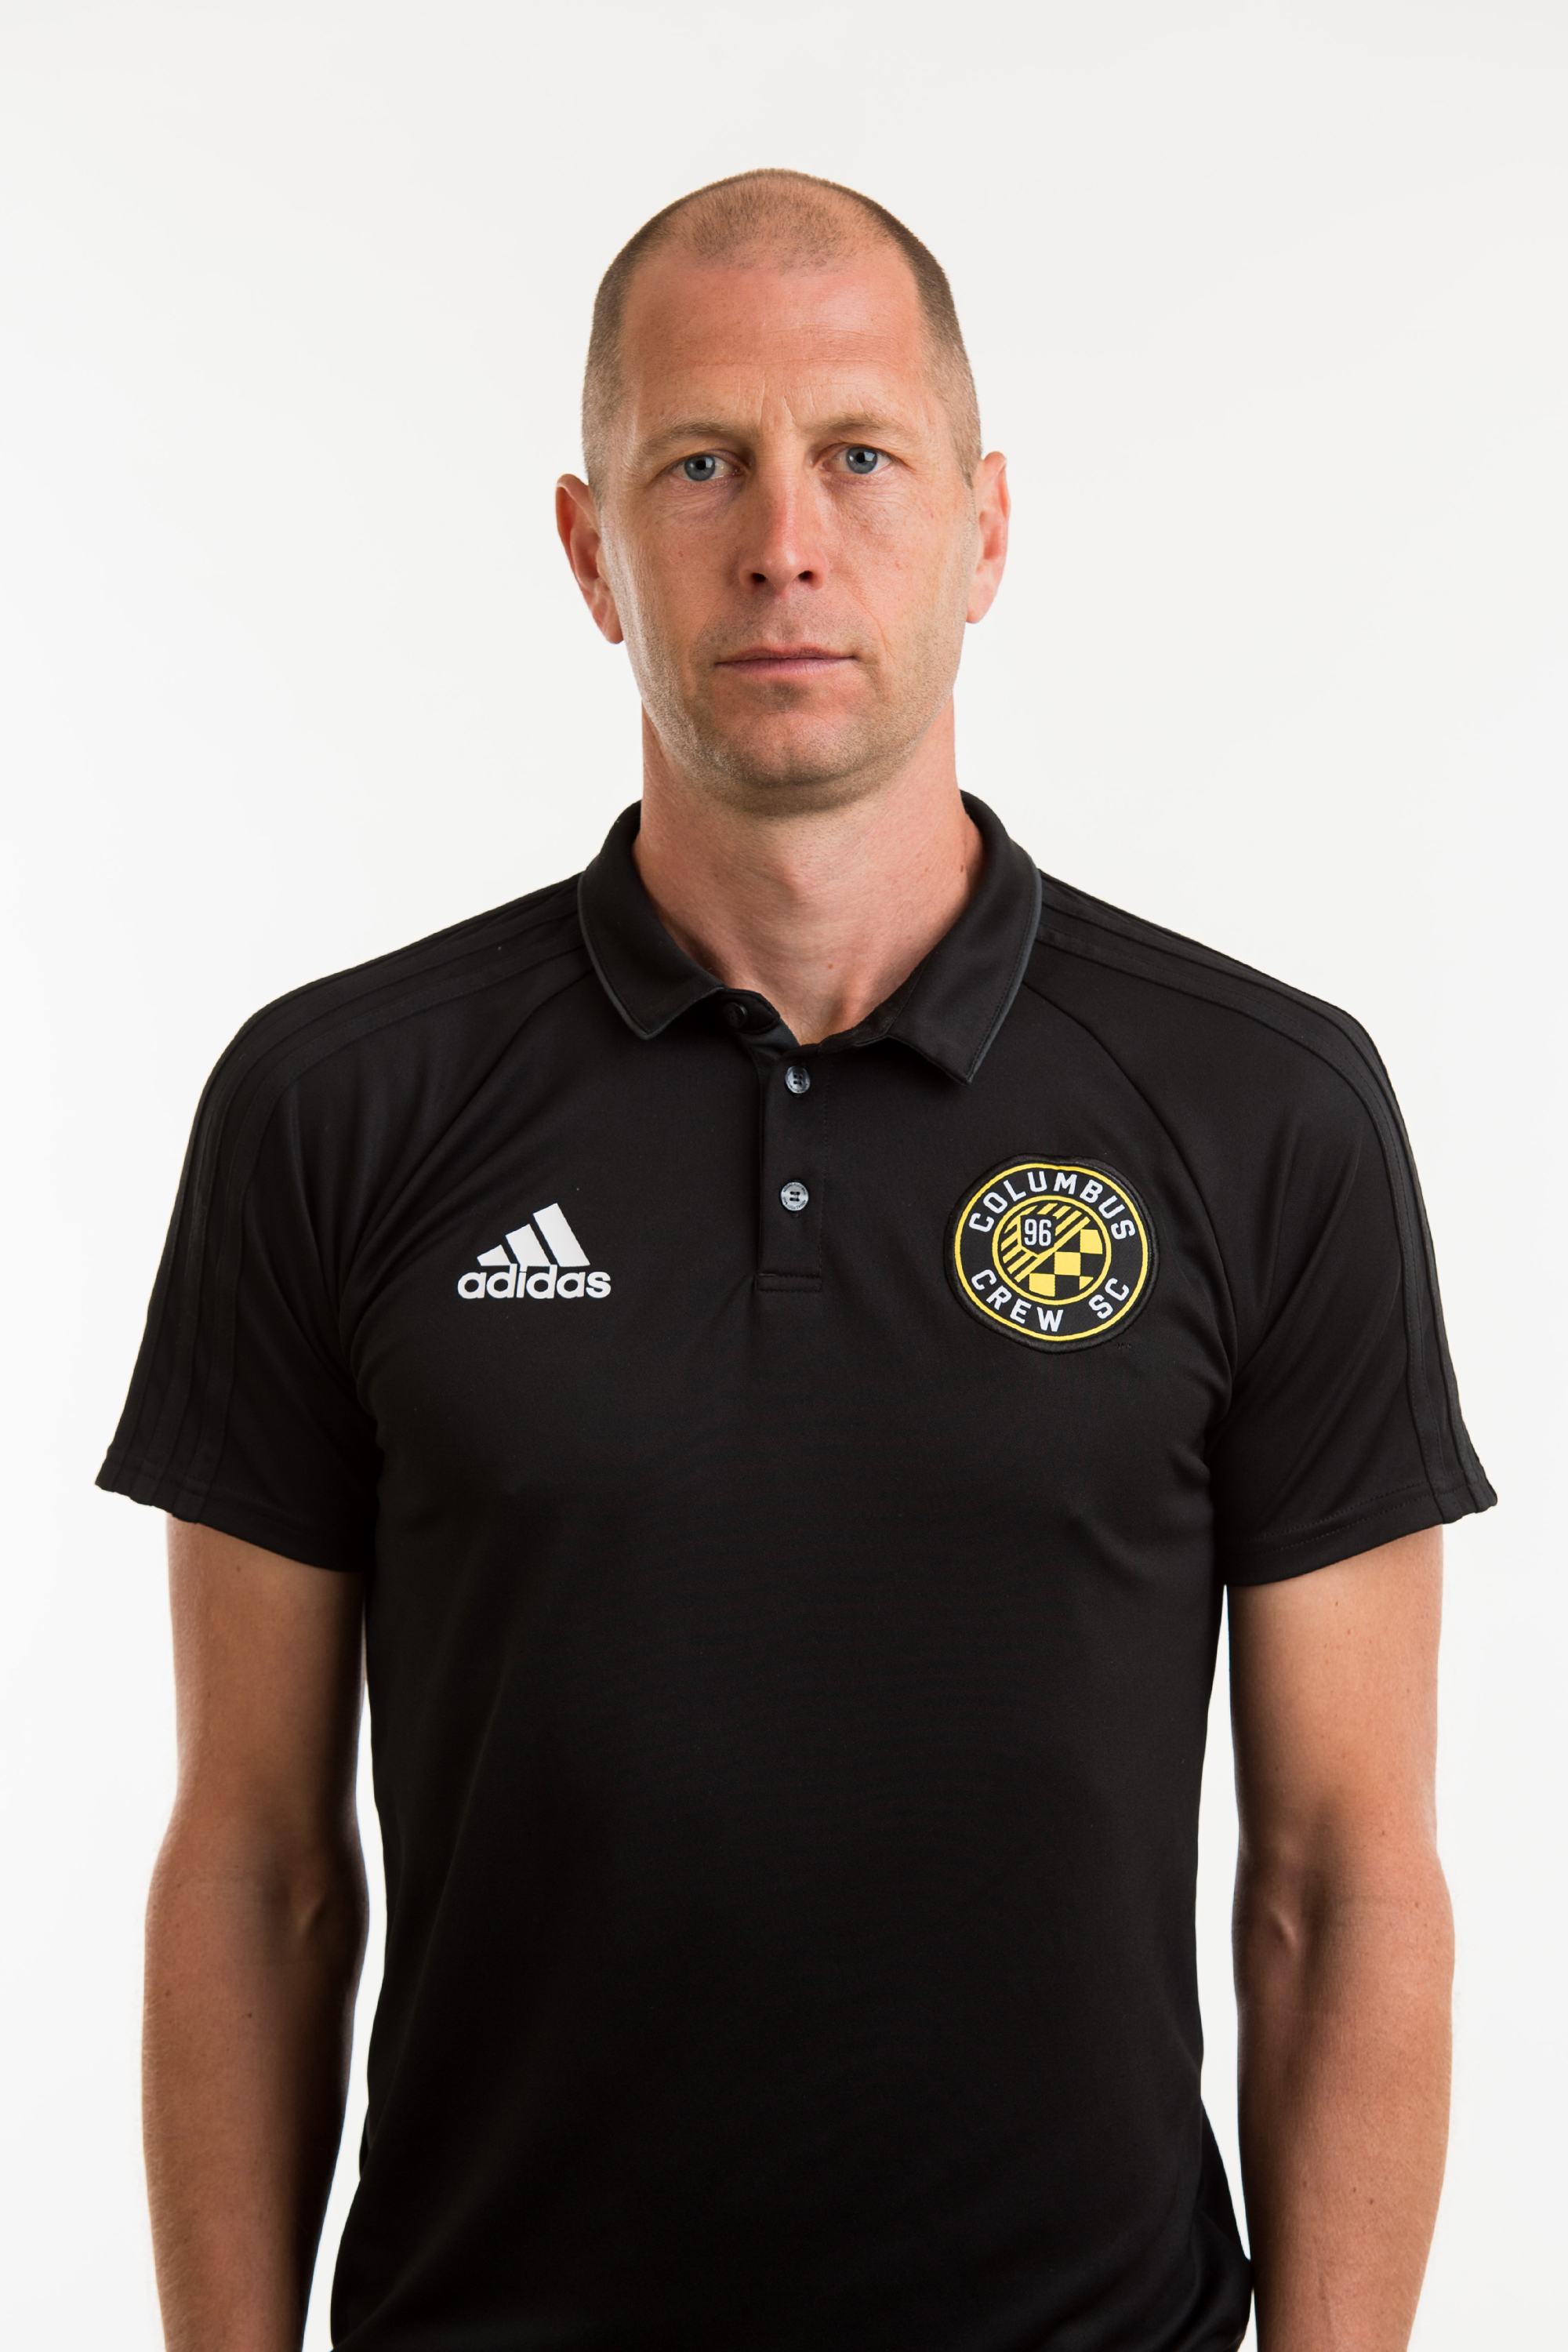 Gregg Berhalter is currently in his fourth season as Columbus Crew SC's Sporting Director and Head Coach, a position he took on November 6, 2013. The Englewood, New Jersey native made his name as a professional player with experience across European football, the U.S. National Team and Major League Soccer. Berhalter is a two-time FIFA World Cup veteran, having participated in the 2002 and 2006 editions of the tournament. In 2011, he won the MLS Cup as a player with the LA Galaxy. As Crew SC's Sporting Director and Head Coach, Berhalter led the club to the 2015 Eastern Conference Championship.